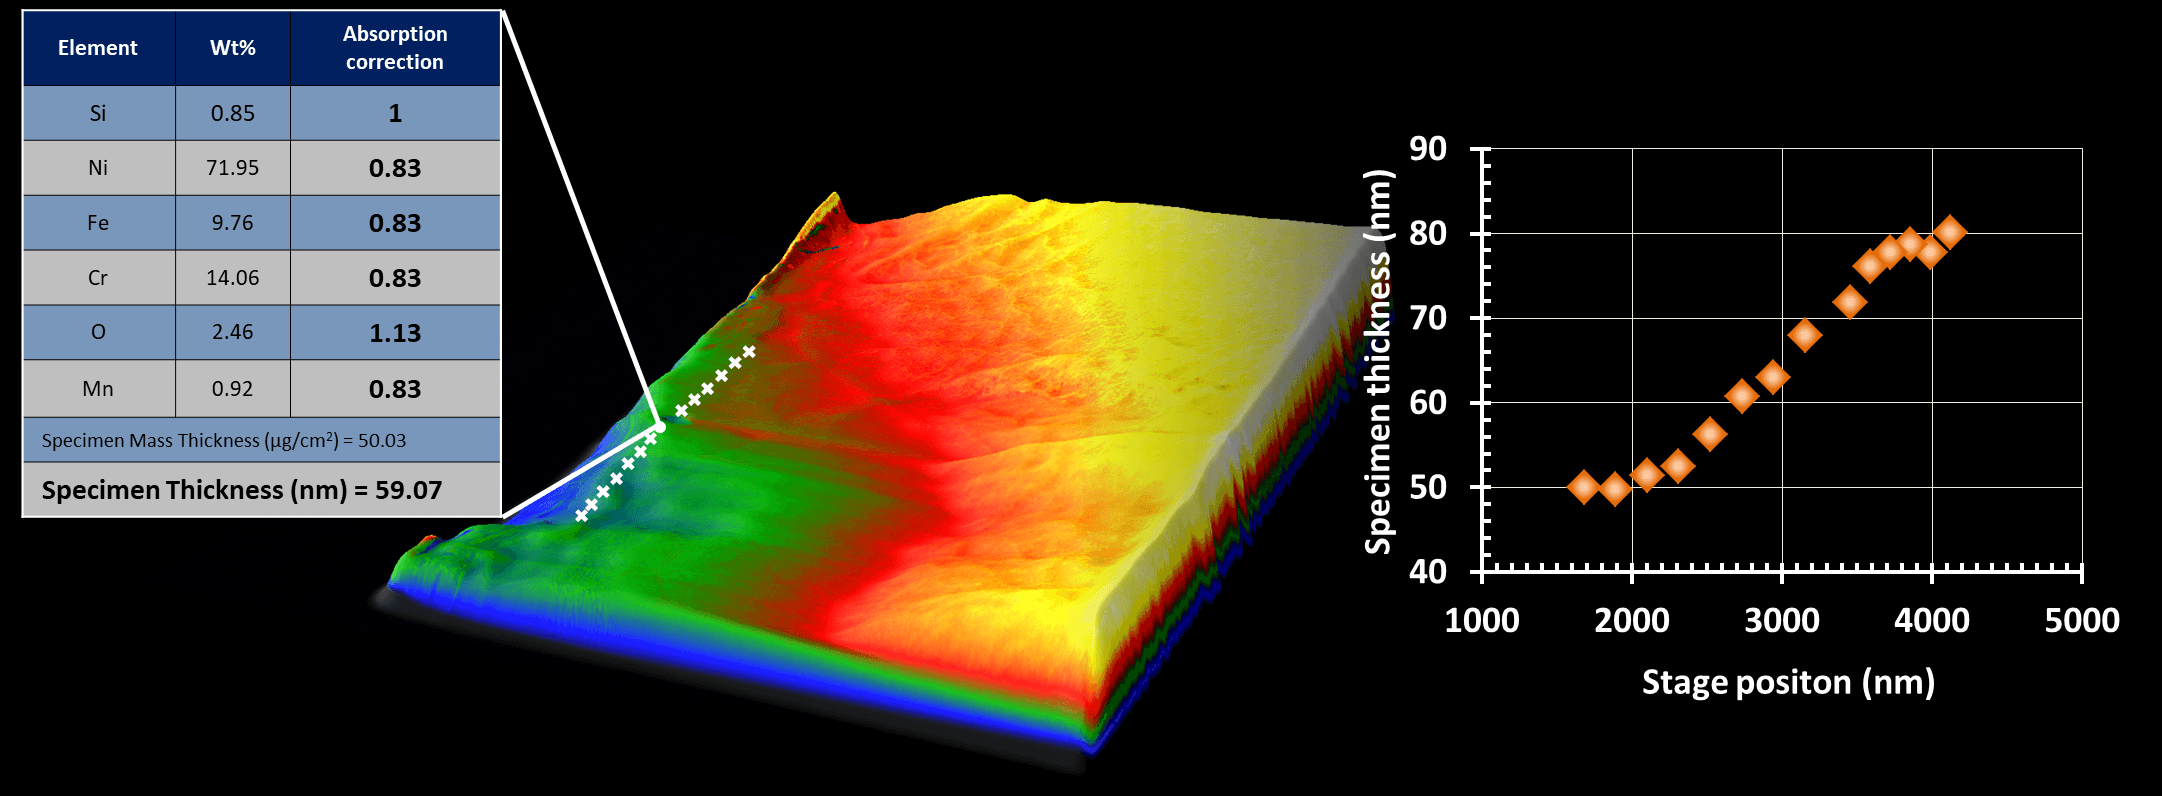 Specimen thickness measurements acquired using M2T across the highlighted region on a FIB lamella.